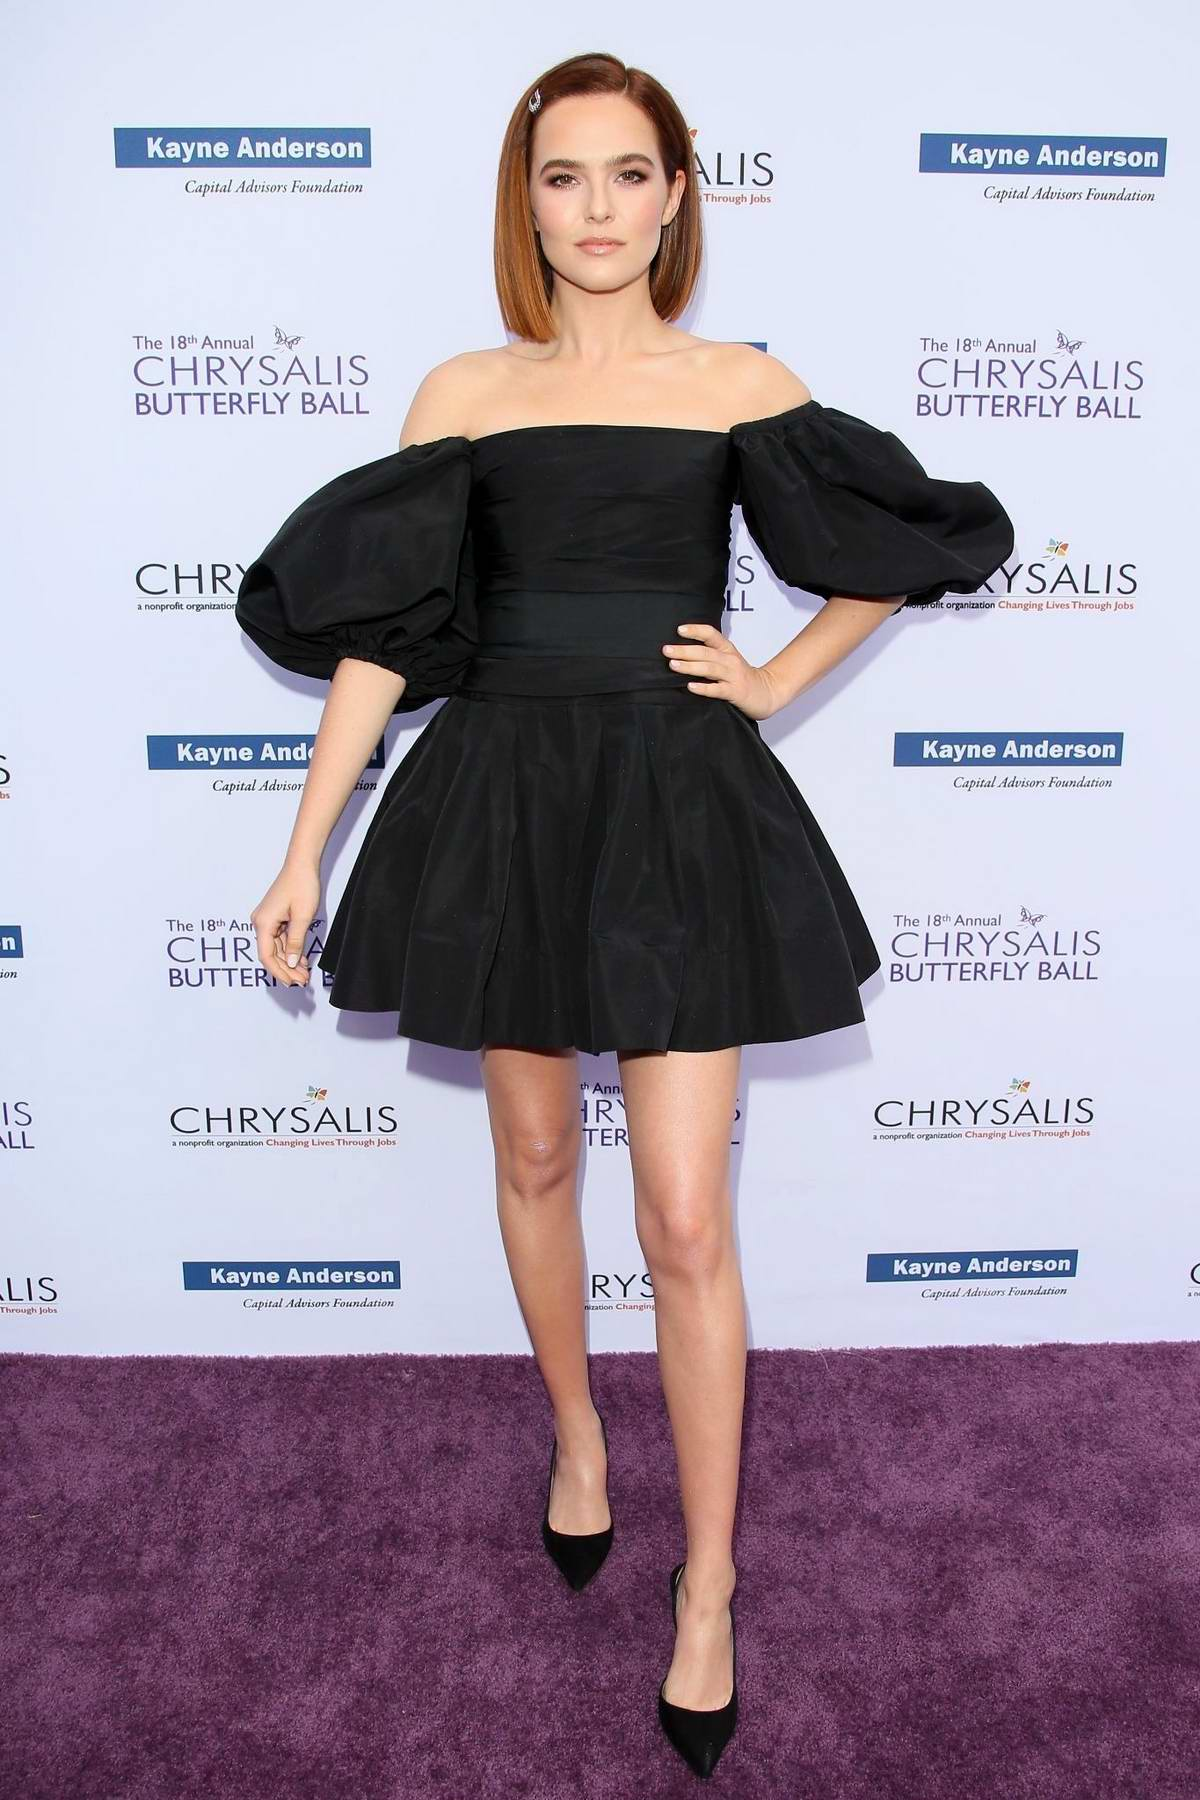 Zoey Deutch attends the 18th annual Chrysalis Butterfly Ball in Brentwood, Los Angeles